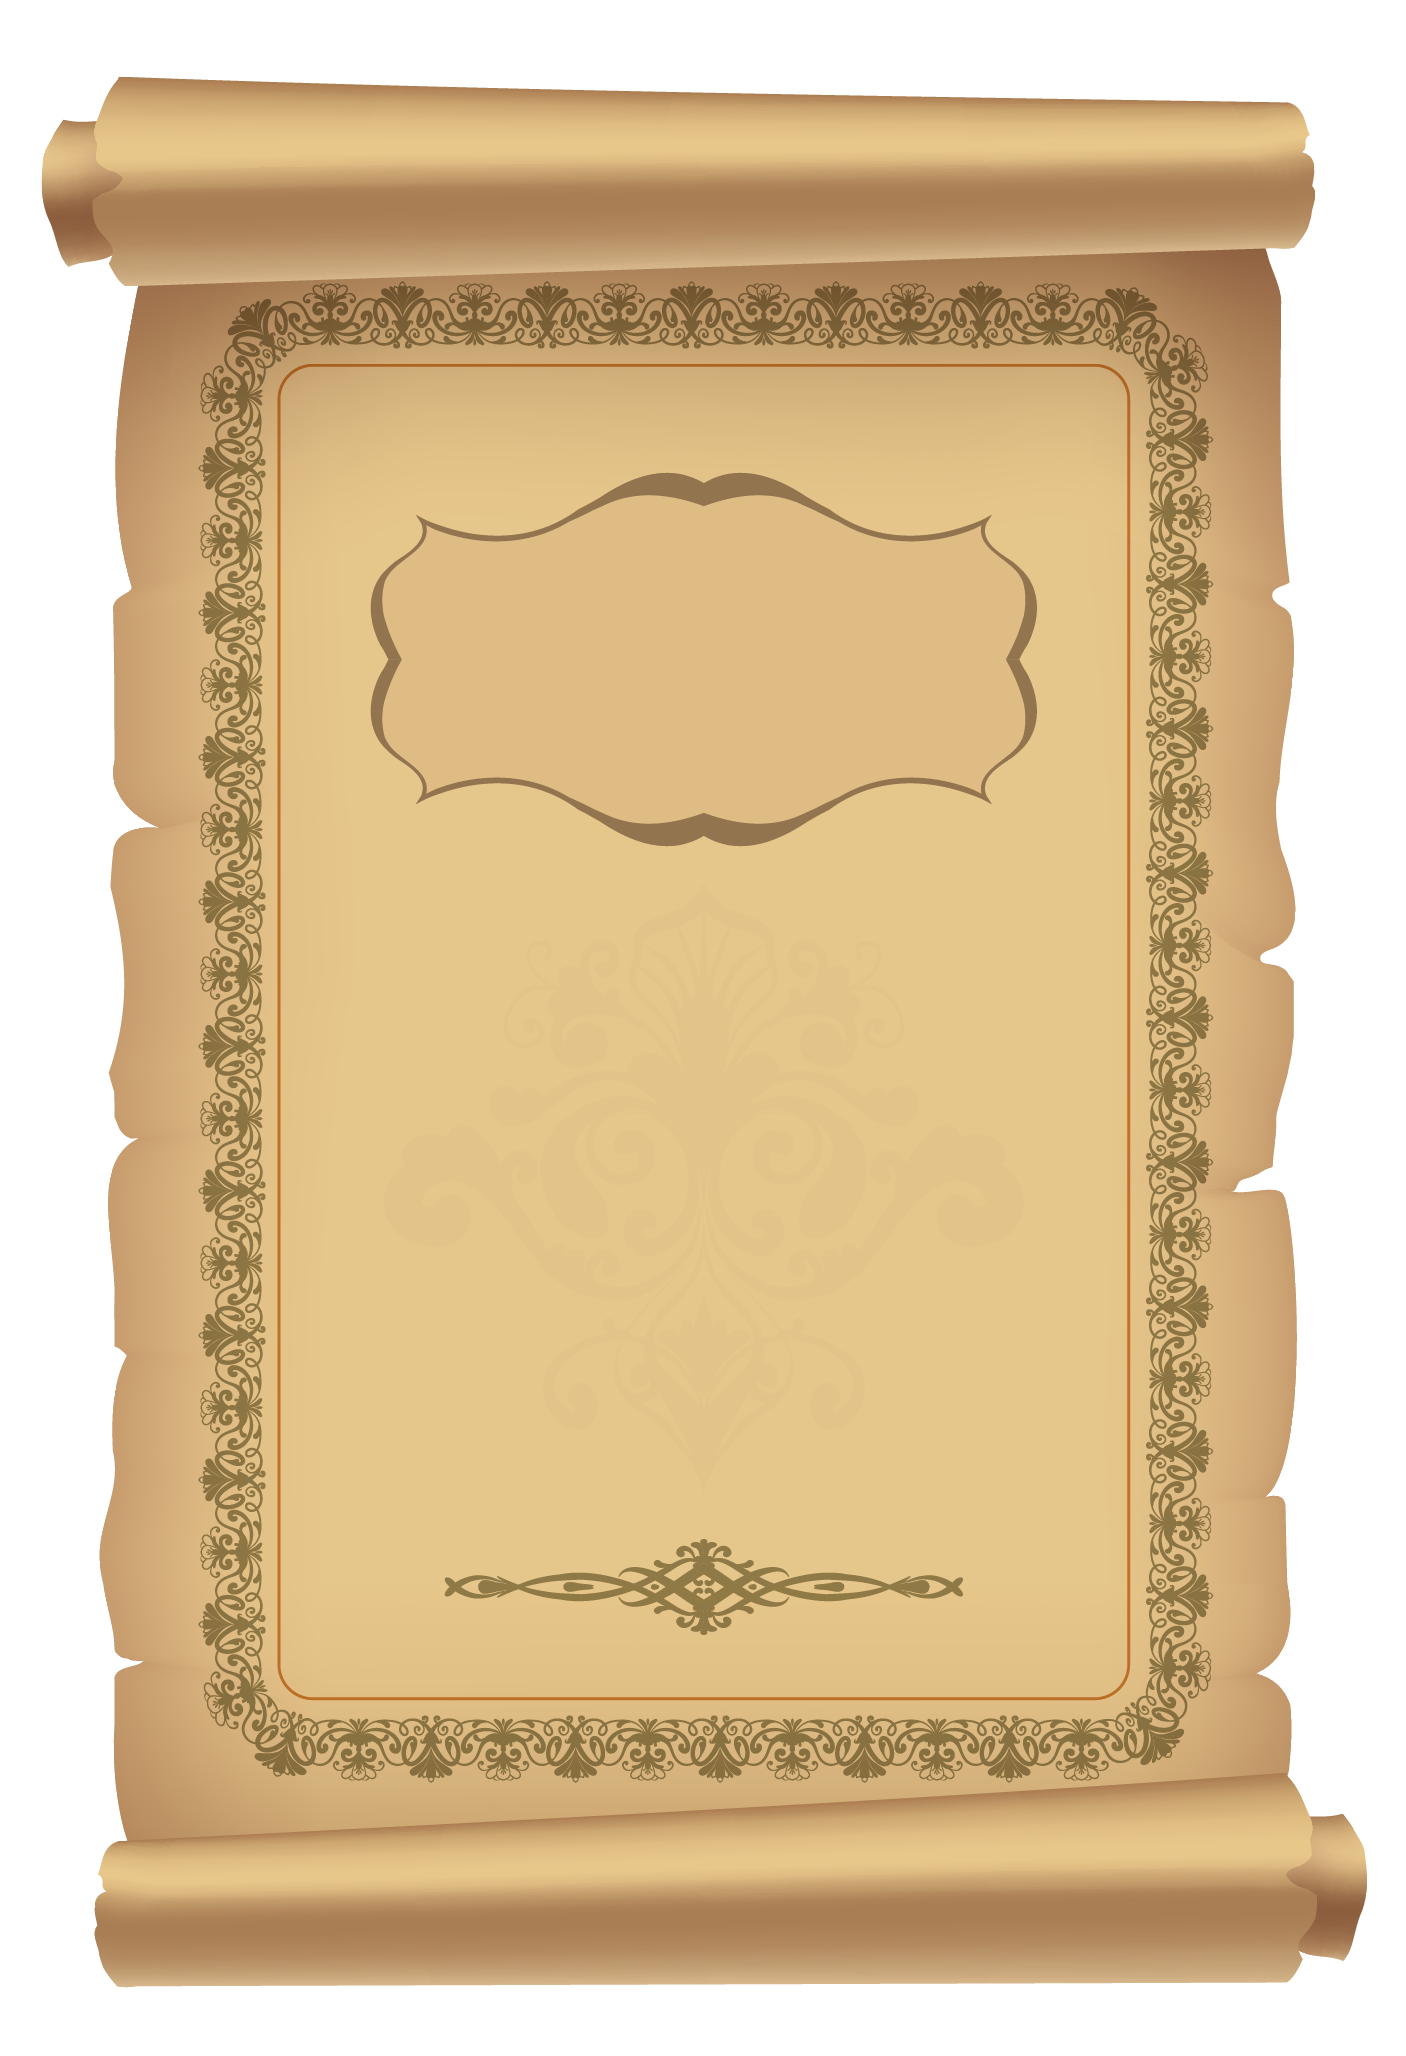 Decorative Scrolled Old Paper PNG Clipart Image | Tezhip